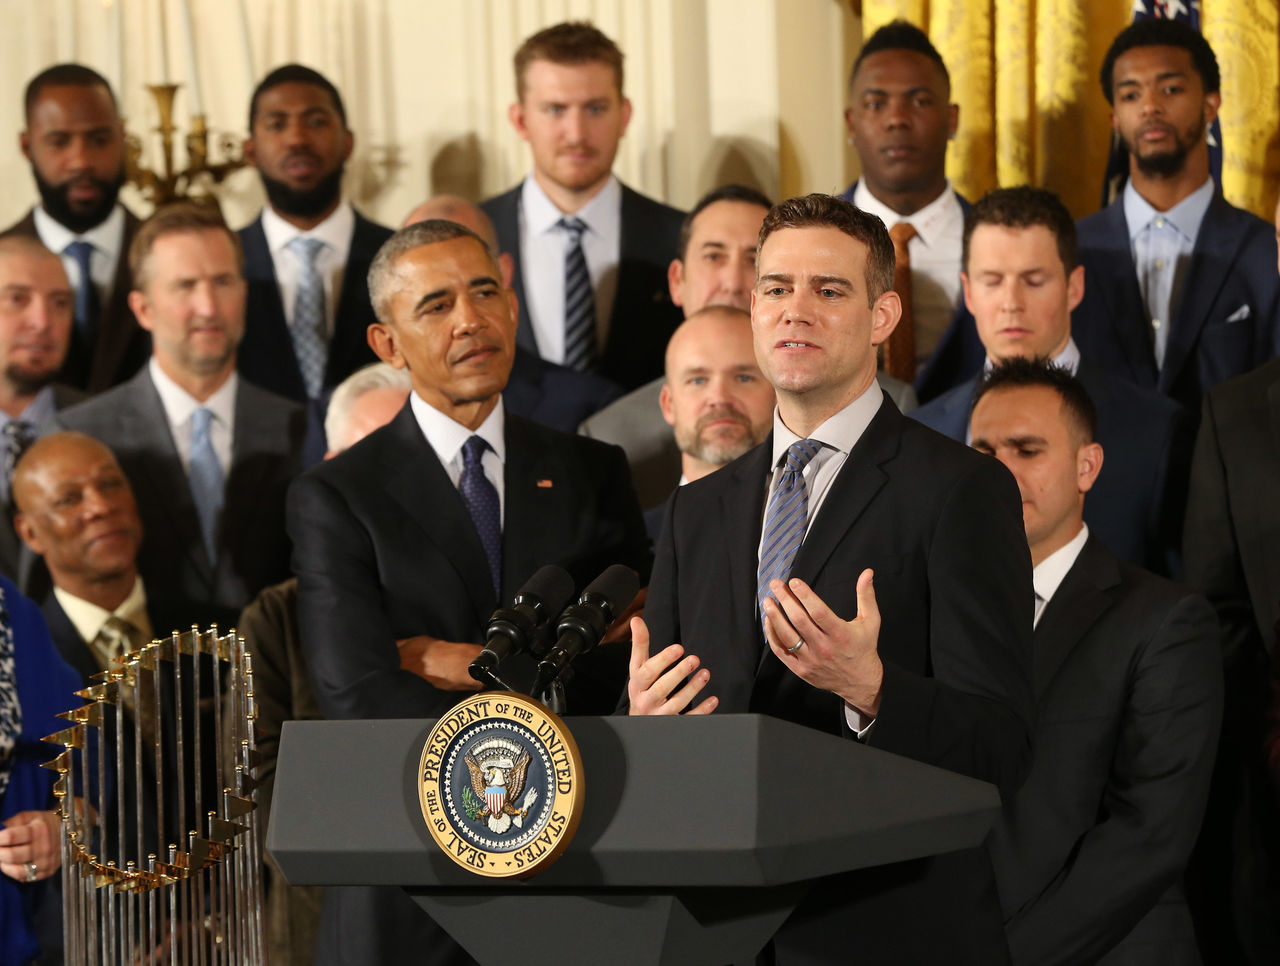 Cropped 2017 01 16t201103z 1829614449 nocid rtrmadp 3 mlb world series champion chicago cubs white house visit